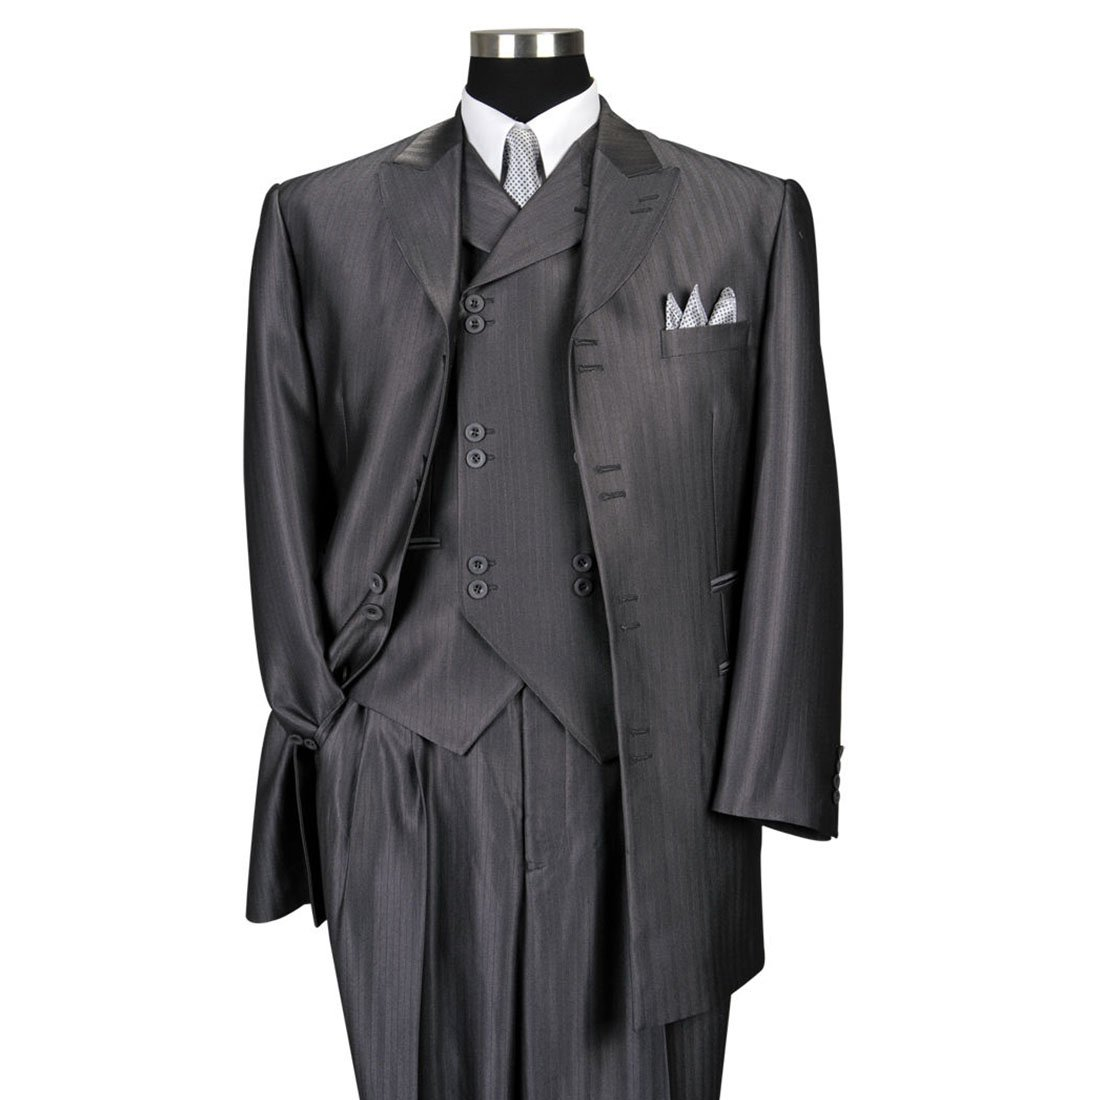 Milano Moda Men's 3 Piece Set Luxurious Wool Feel Suit HL5264 New York Brand